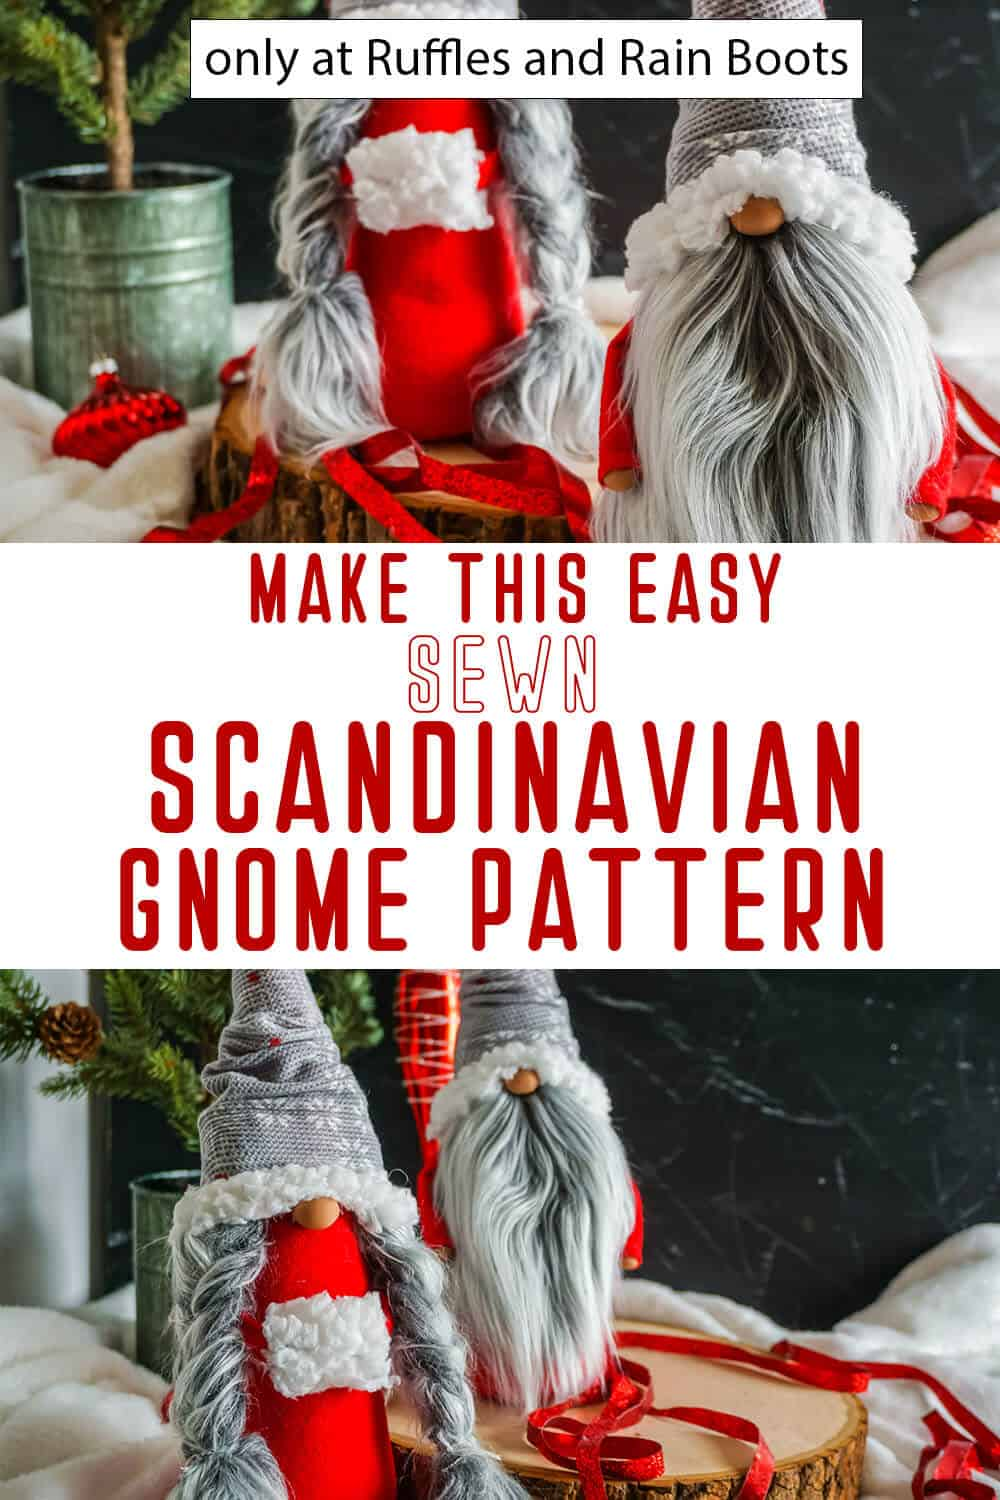 photo collage of christmas scandinavian gnome pattern sewn gnome with text which reads make this easy sewn scandinavian gnome pattern